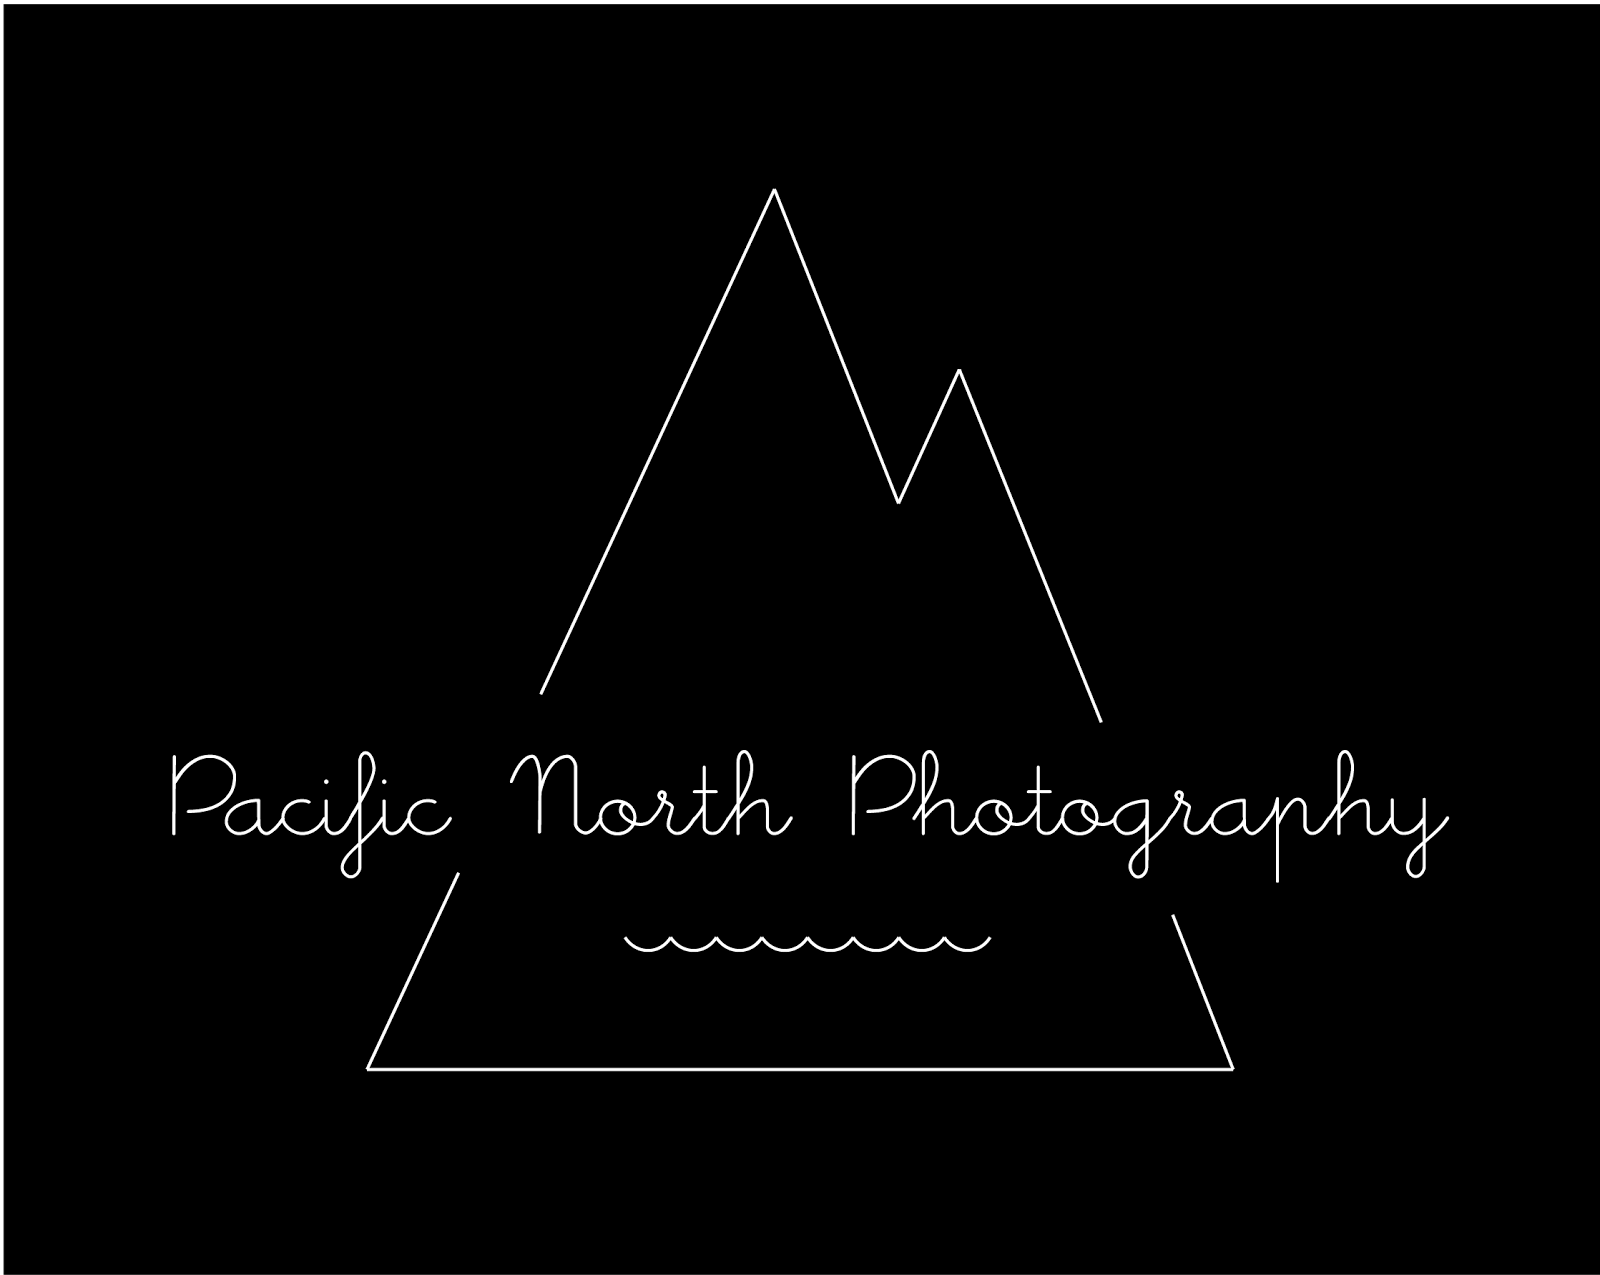 Pacific North Photography